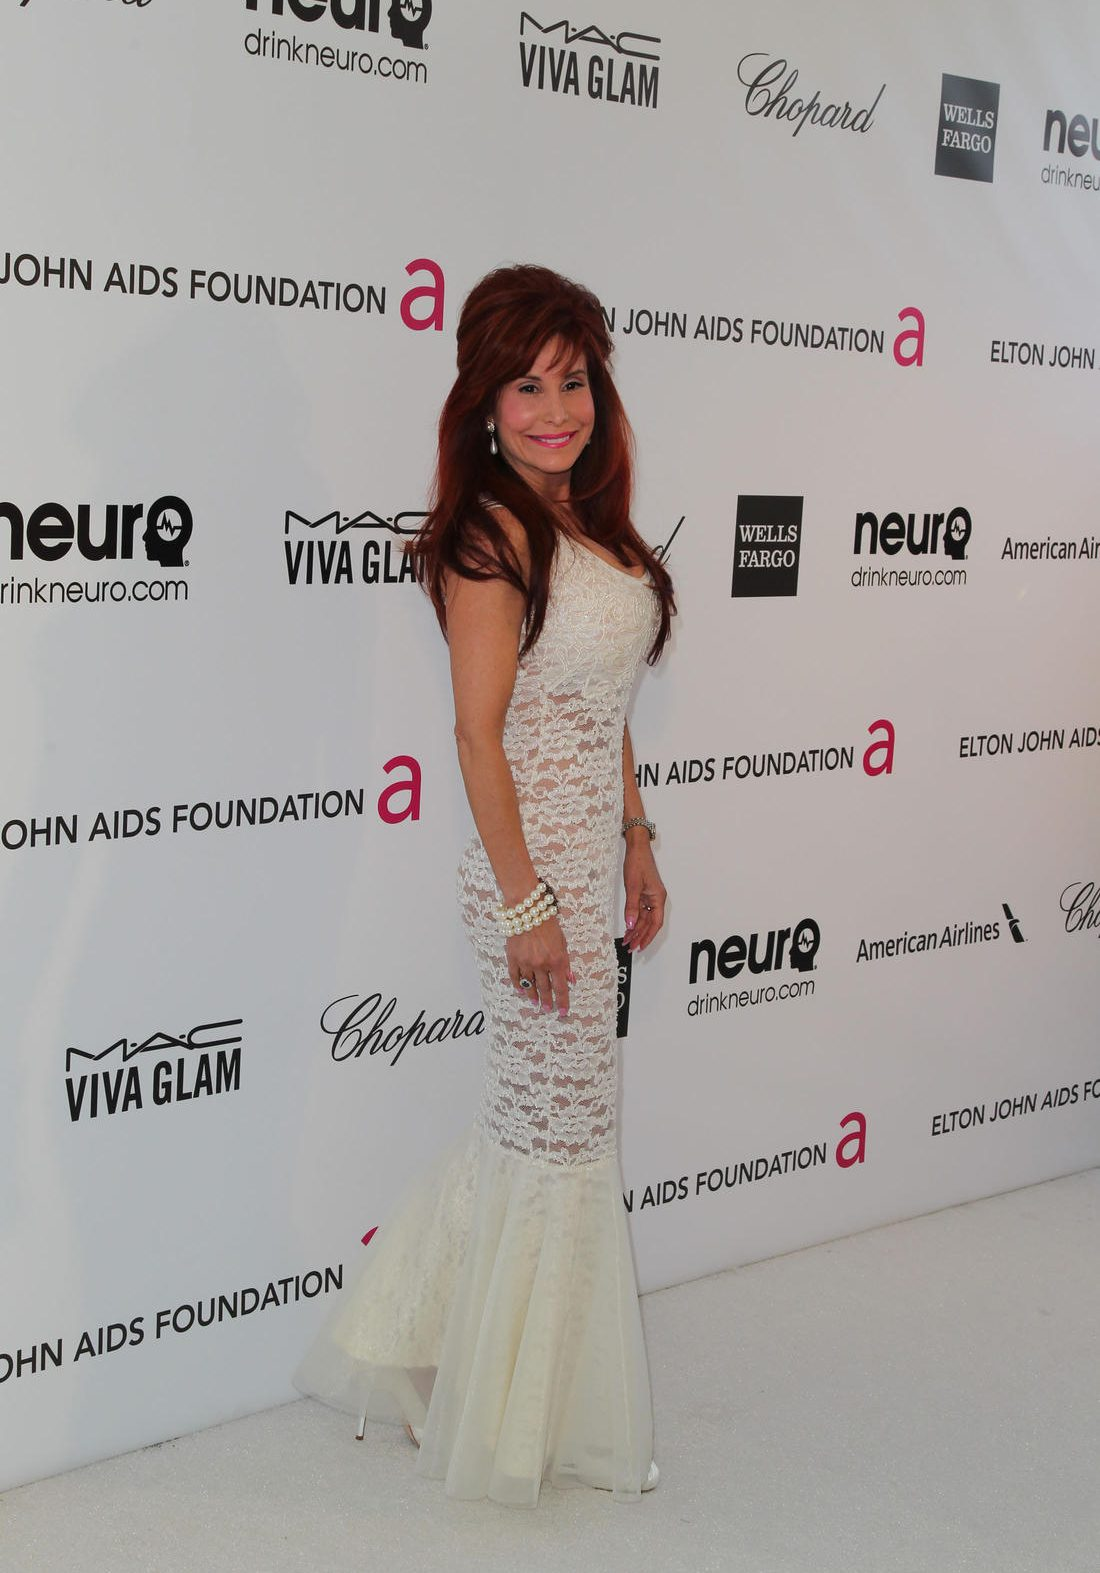 K05CMH Suzanne Delaurentiis. Red carpet arrivals at the Elton John Oscar Party in Los Angeles, California.